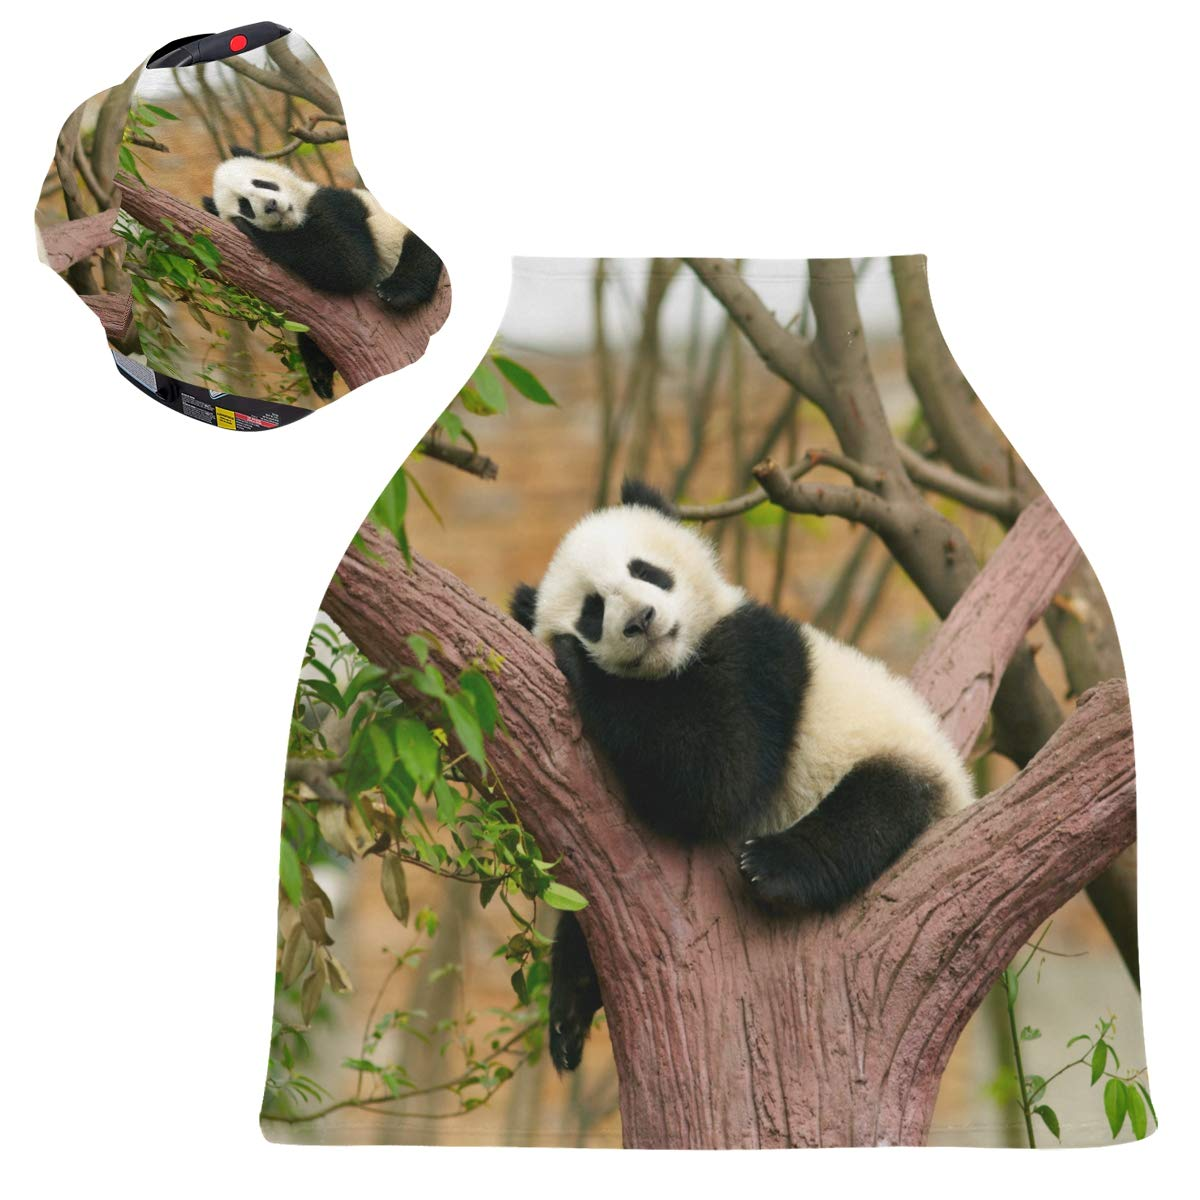 Stretchy Baby Car Seat Canopy - Sleeping Giant Panda Baby Infant Stroller Cover Multi Use Baby Car Seat Covers Nursing Cover for Girl